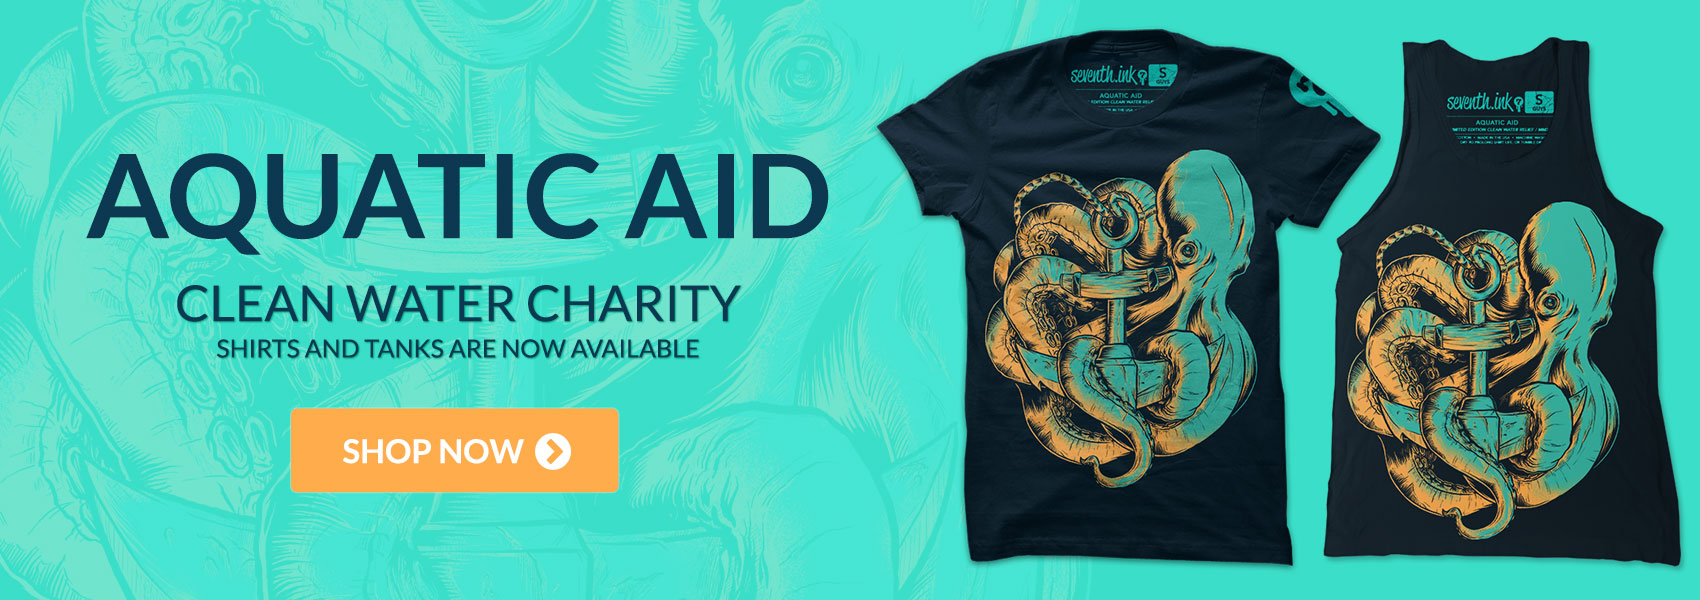 hero-2015-aquatic-aid